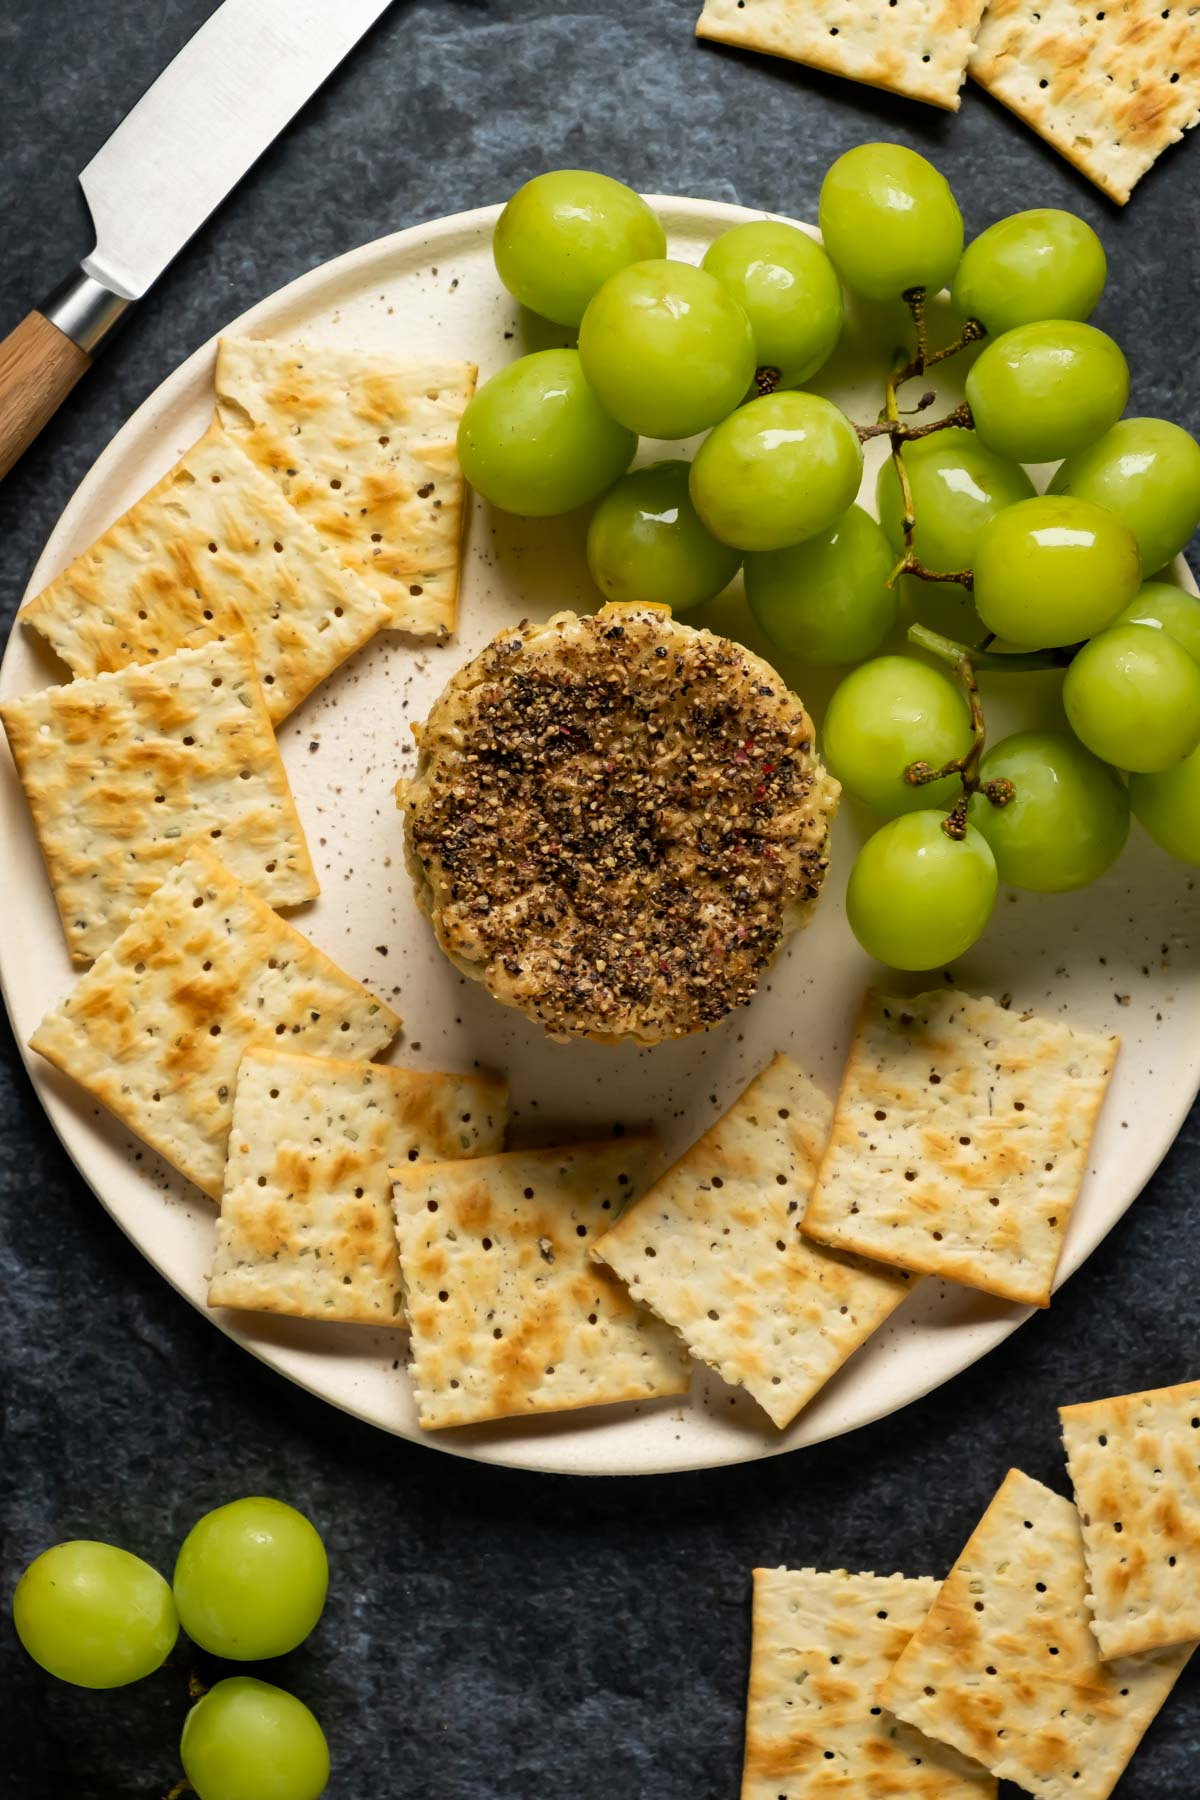 Vegan camembert on a white plate with crackers and grapes.